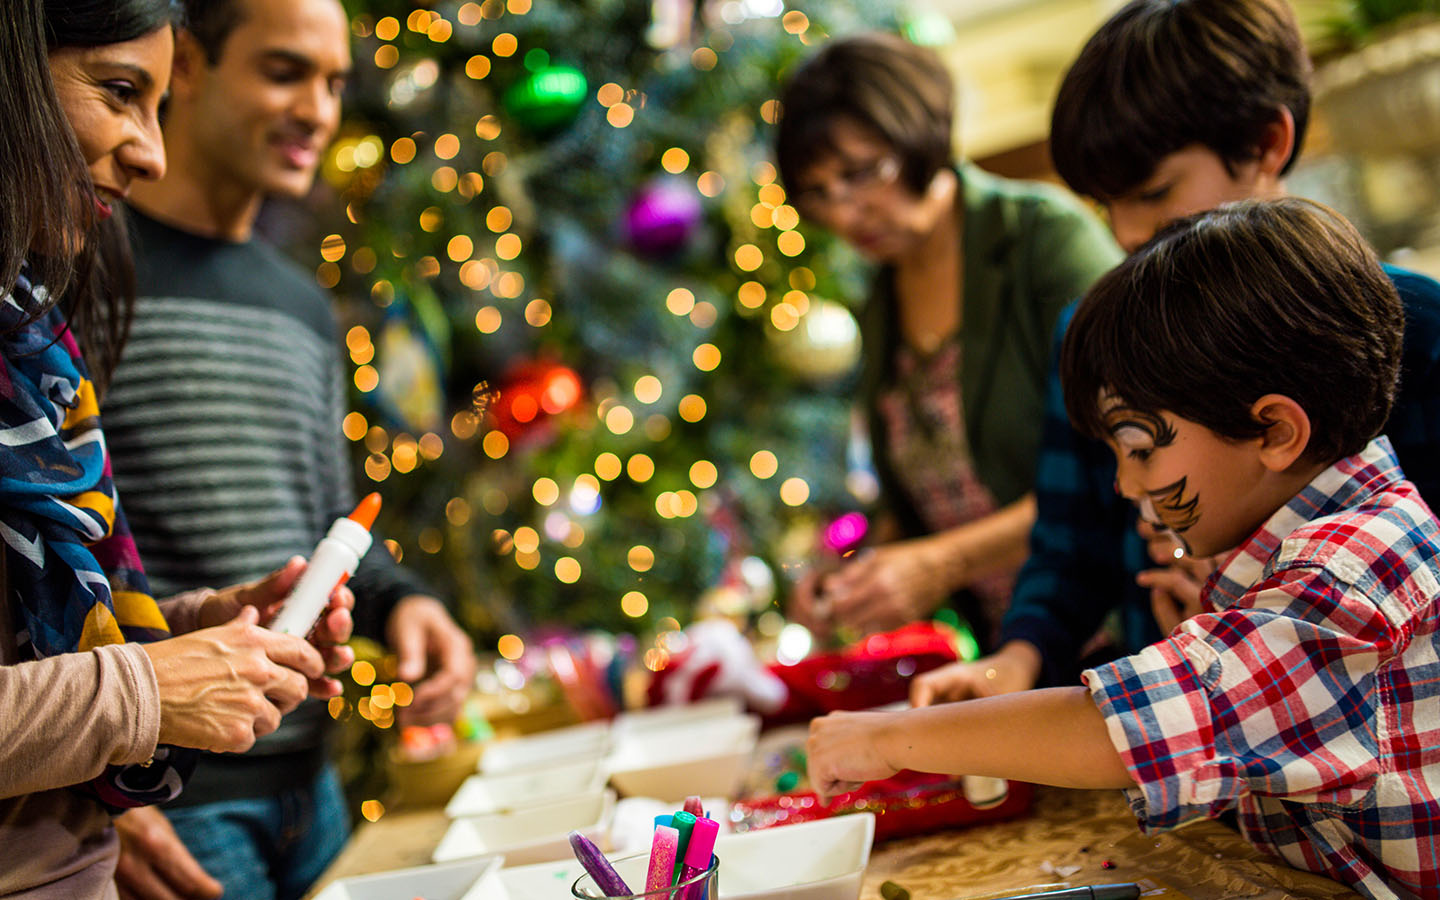 Kids activities during the holidays at Universal Orlando Resort.